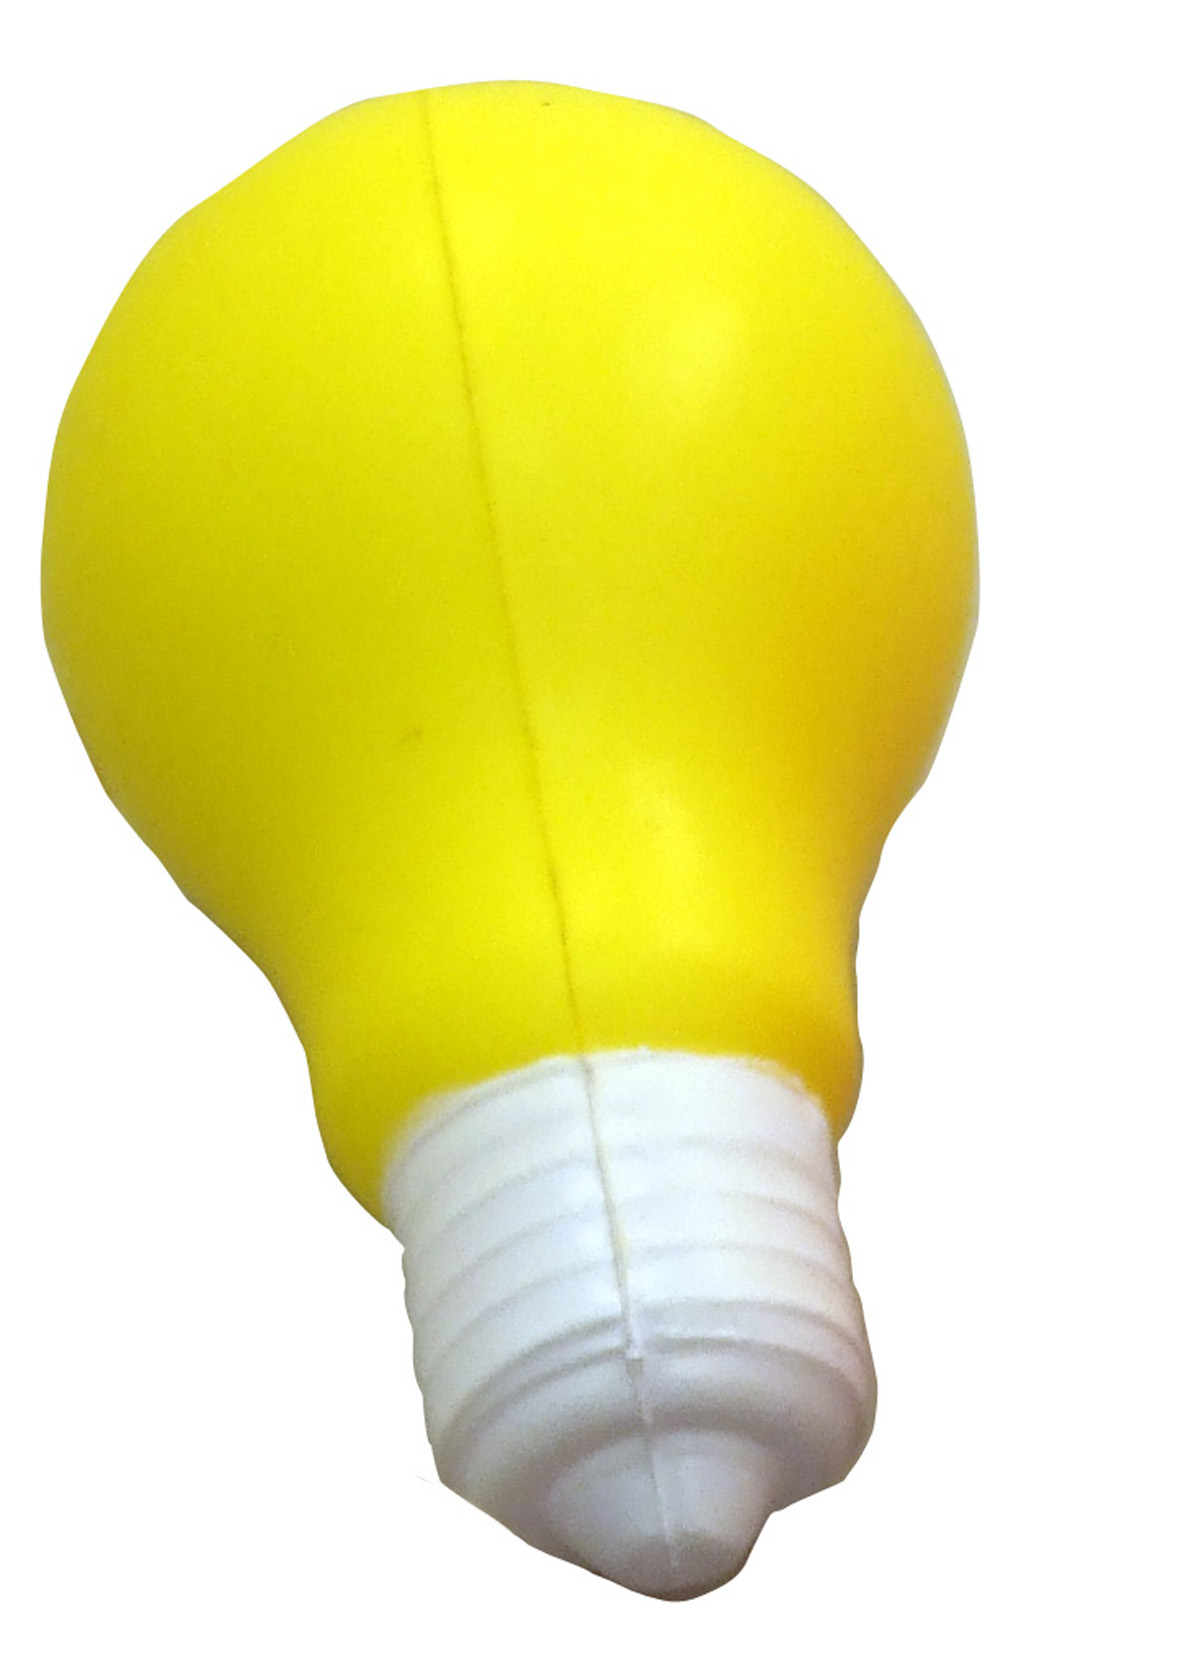 Light Bulb Stress ball (10.5X6Cm)